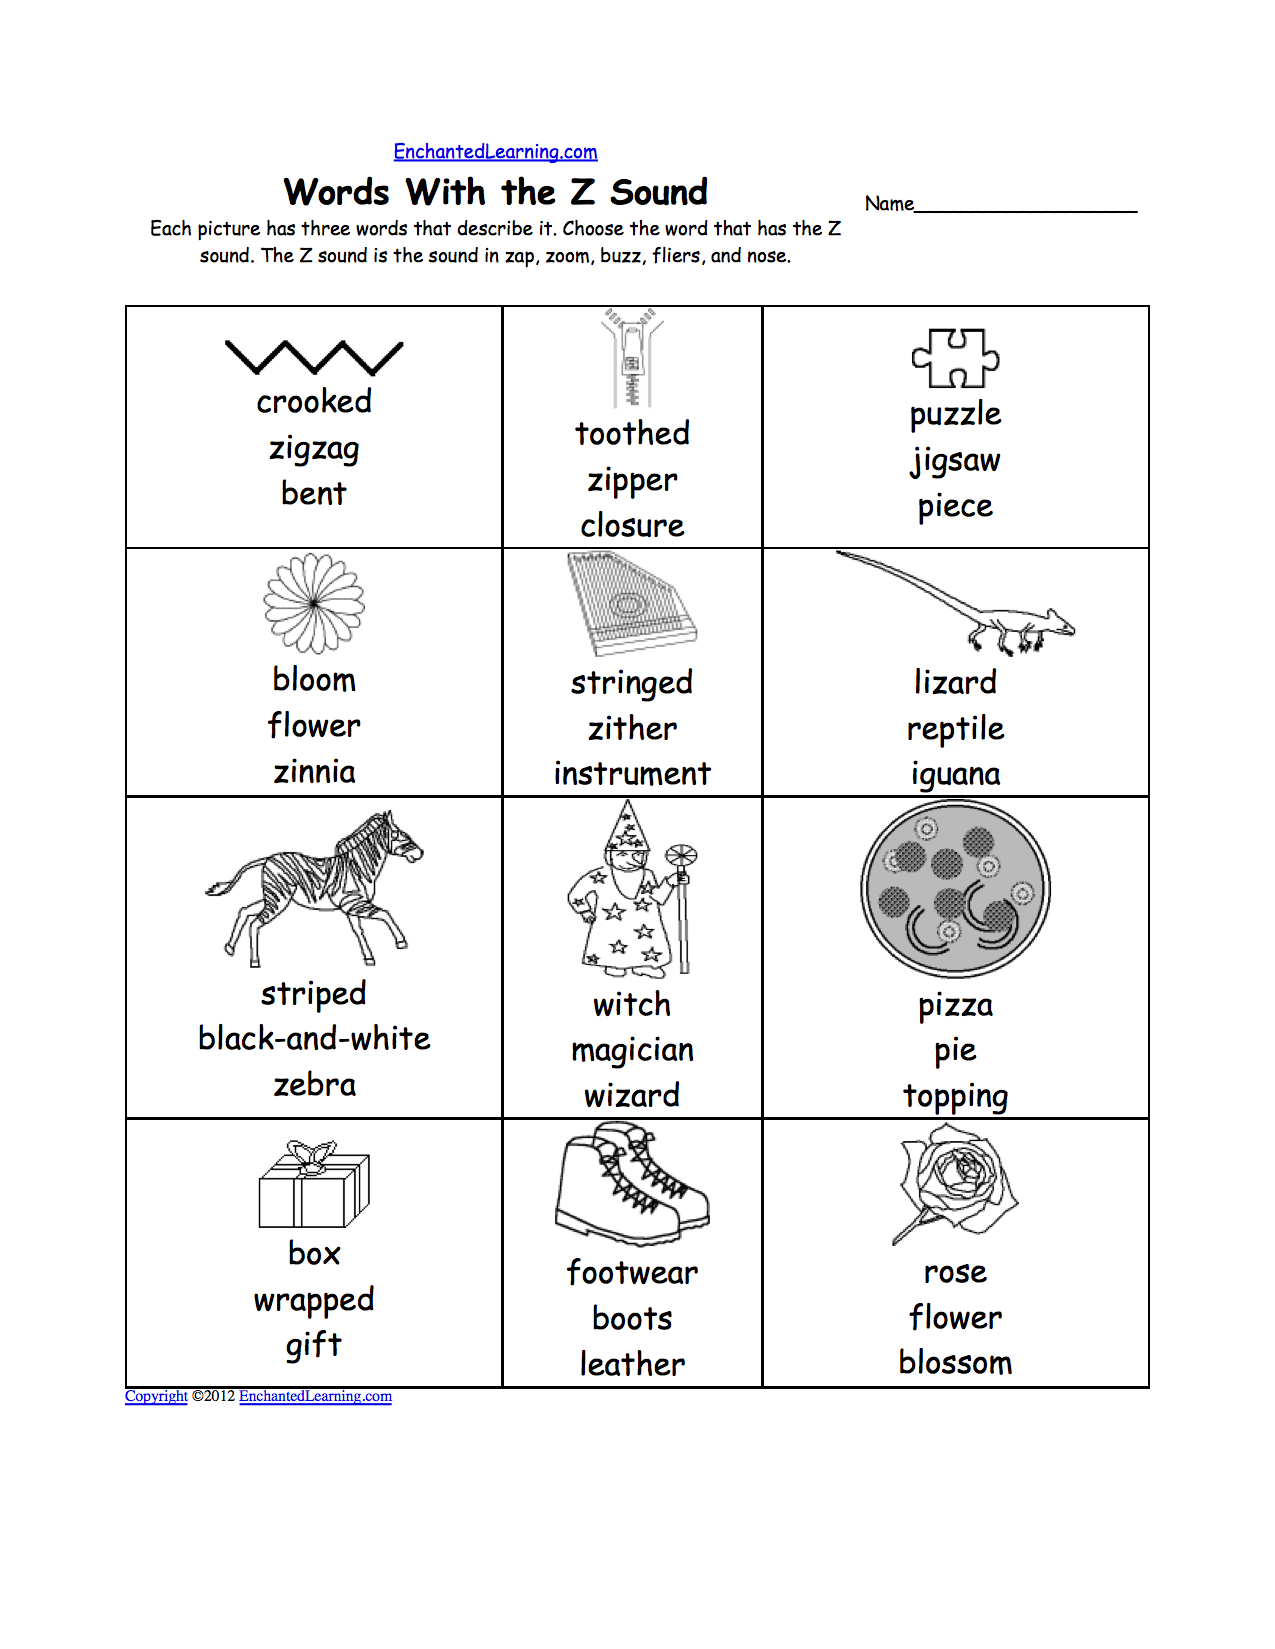 Weirdmailus  Marvelous Phonics Worksheets Multiple Choice Worksheets To Print  With Lovable Phonics Worksheets Multiple Choice Worksheets To Print  Enchantedlearningcom With Breathtaking Solving Rational Equations Worksheets Also Adding  Worksheet In Addition Capitalization Worksheets For Th Grade And Prefix Suffix And Root Word Worksheets As Well As Prefix And Suffix Worksheets Nd Grade Additionally Activities Of Daily Living Worksheet From Enchantedlearningcom With Weirdmailus  Lovable Phonics Worksheets Multiple Choice Worksheets To Print  With Breathtaking Phonics Worksheets Multiple Choice Worksheets To Print  Enchantedlearningcom And Marvelous Solving Rational Equations Worksheets Also Adding  Worksheet In Addition Capitalization Worksheets For Th Grade From Enchantedlearningcom